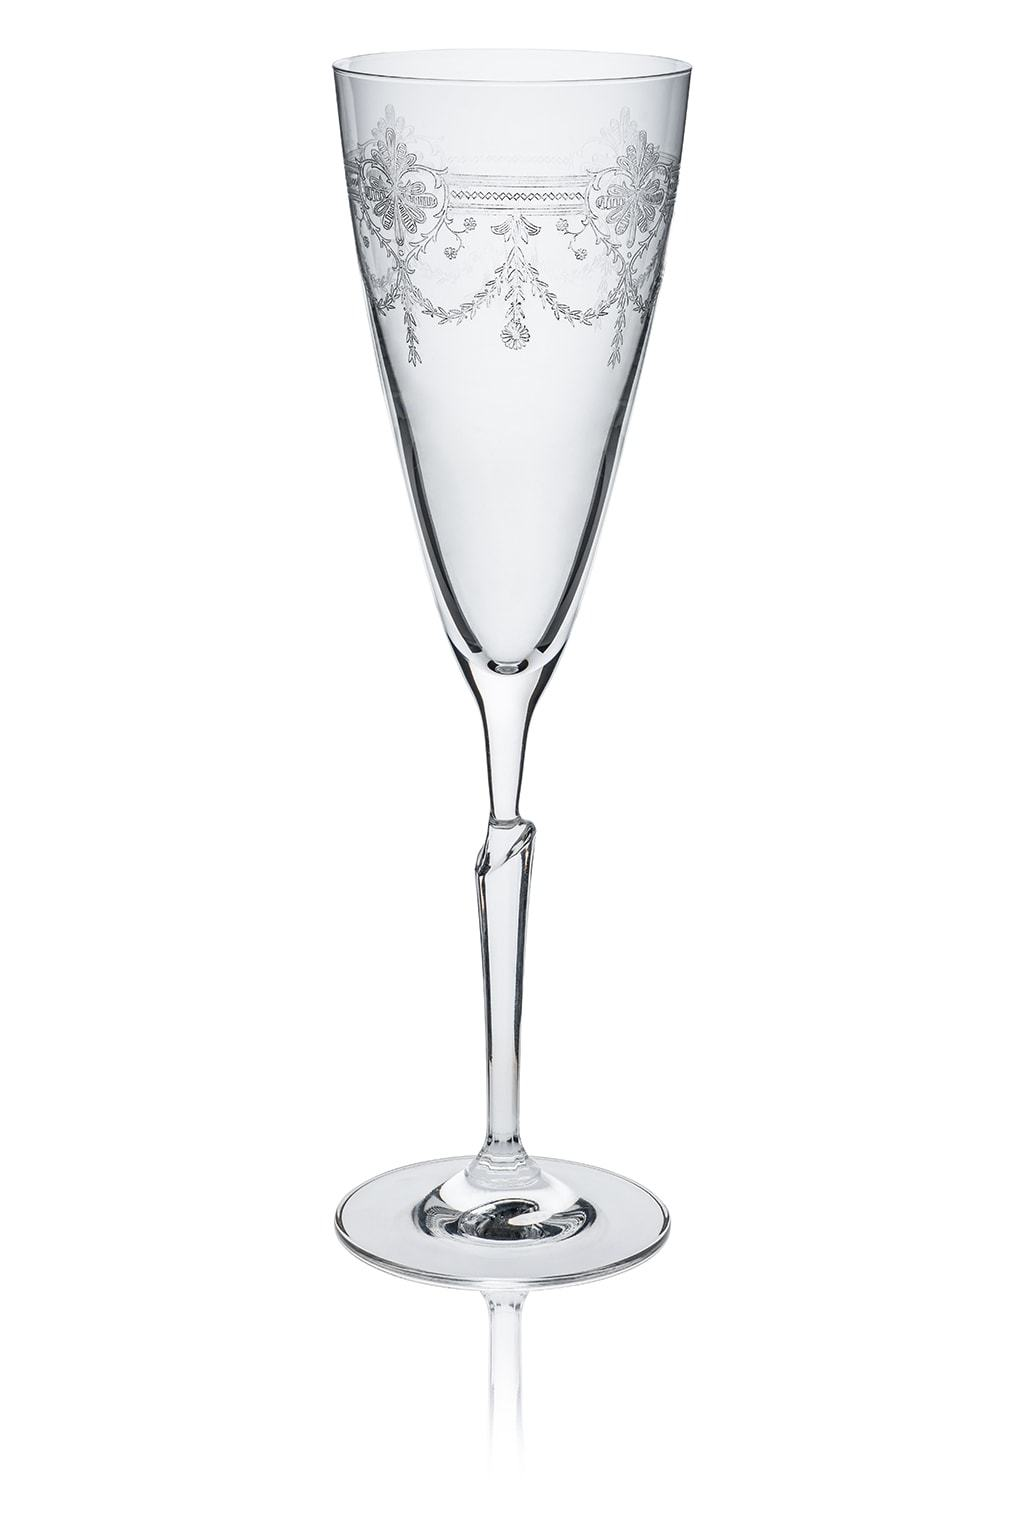 First Lady Champagne Flute - part of set of 6 drinking glasses